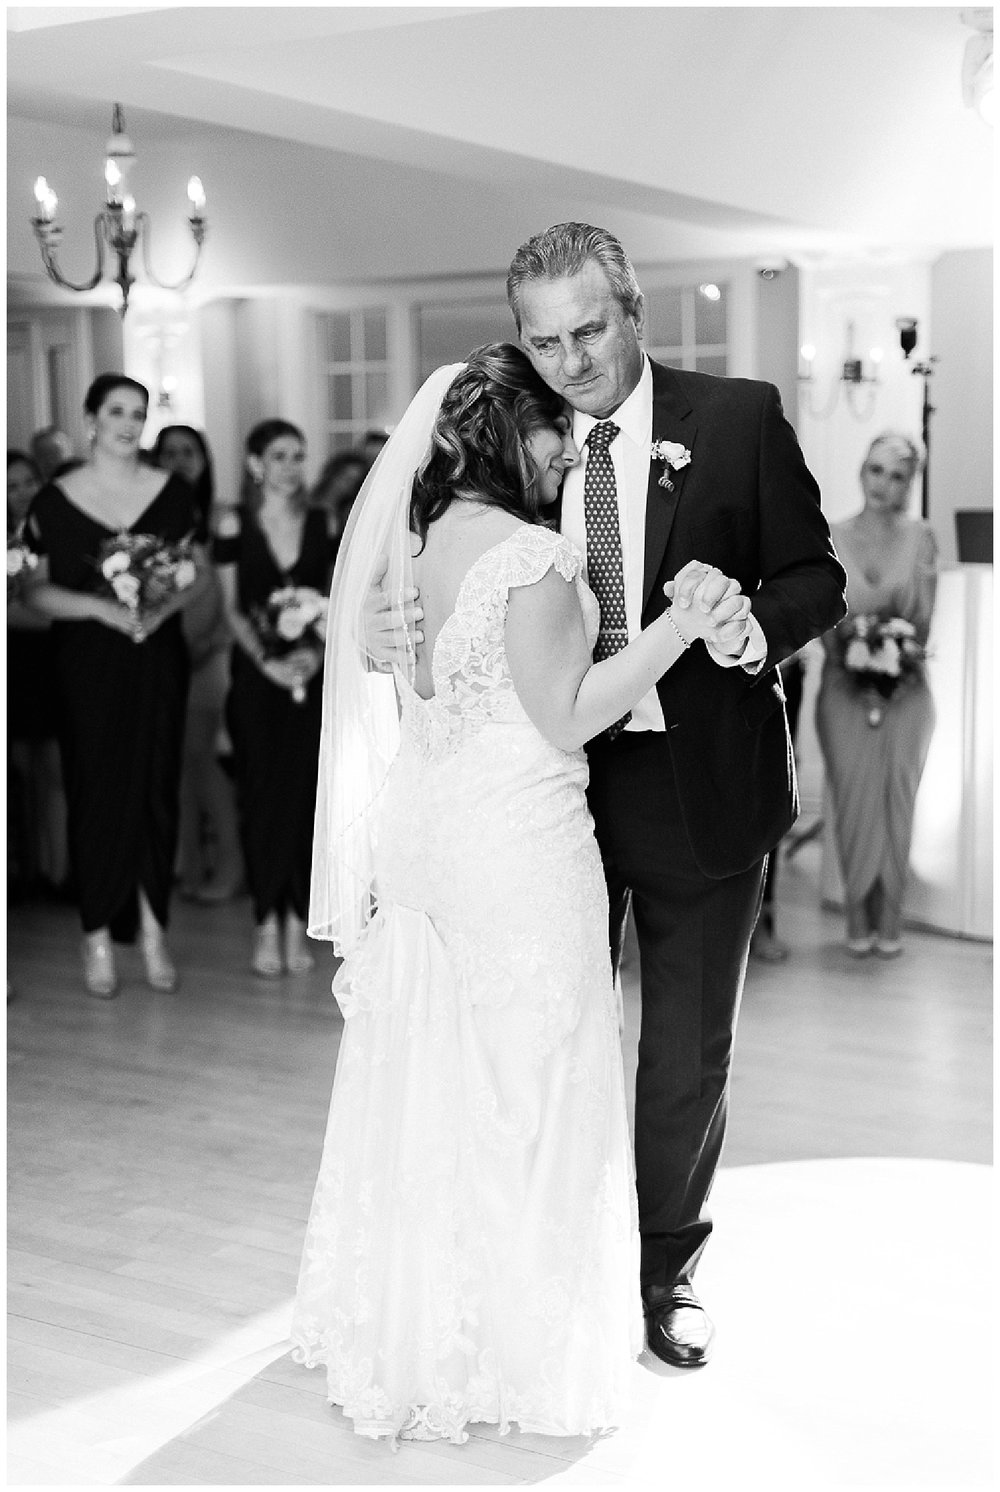 New Jersey Weddings | Sparta Weddings | Rock Island Lake Club Wedding | www.redoakweddings.comNew Jersey Weddings | Sparta Weddings | Rock Island Lake Club Wedding | www.redoakweddings.com